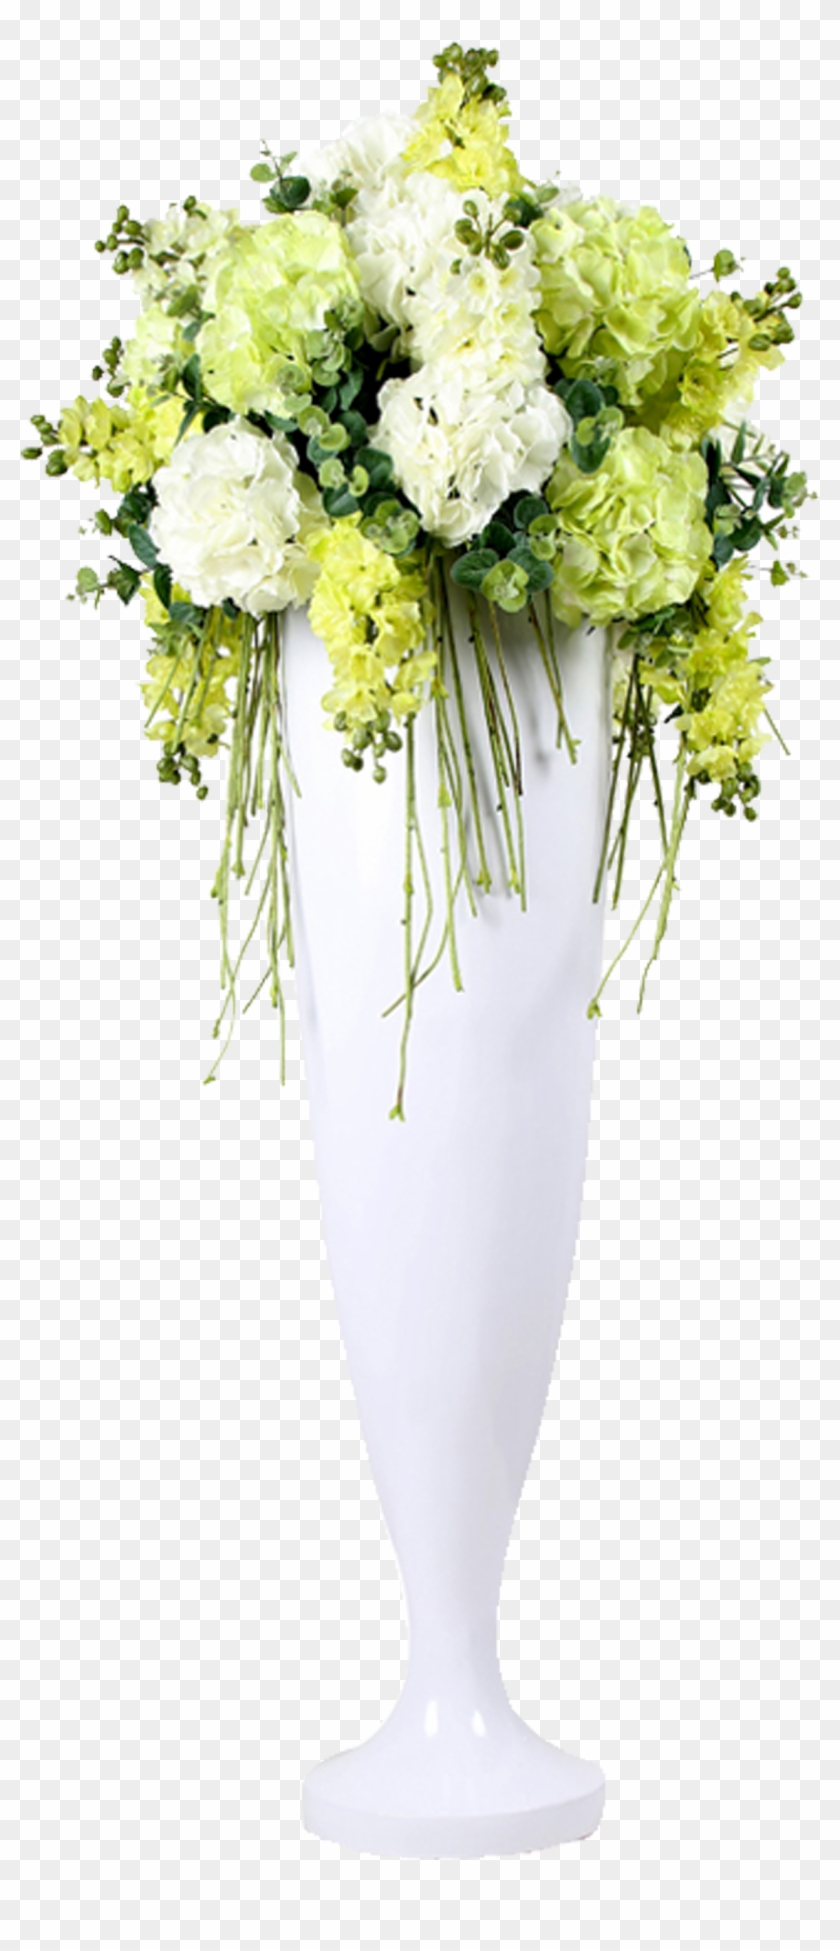 ClipartMax : flowers in vase clip art - startupinsights.org